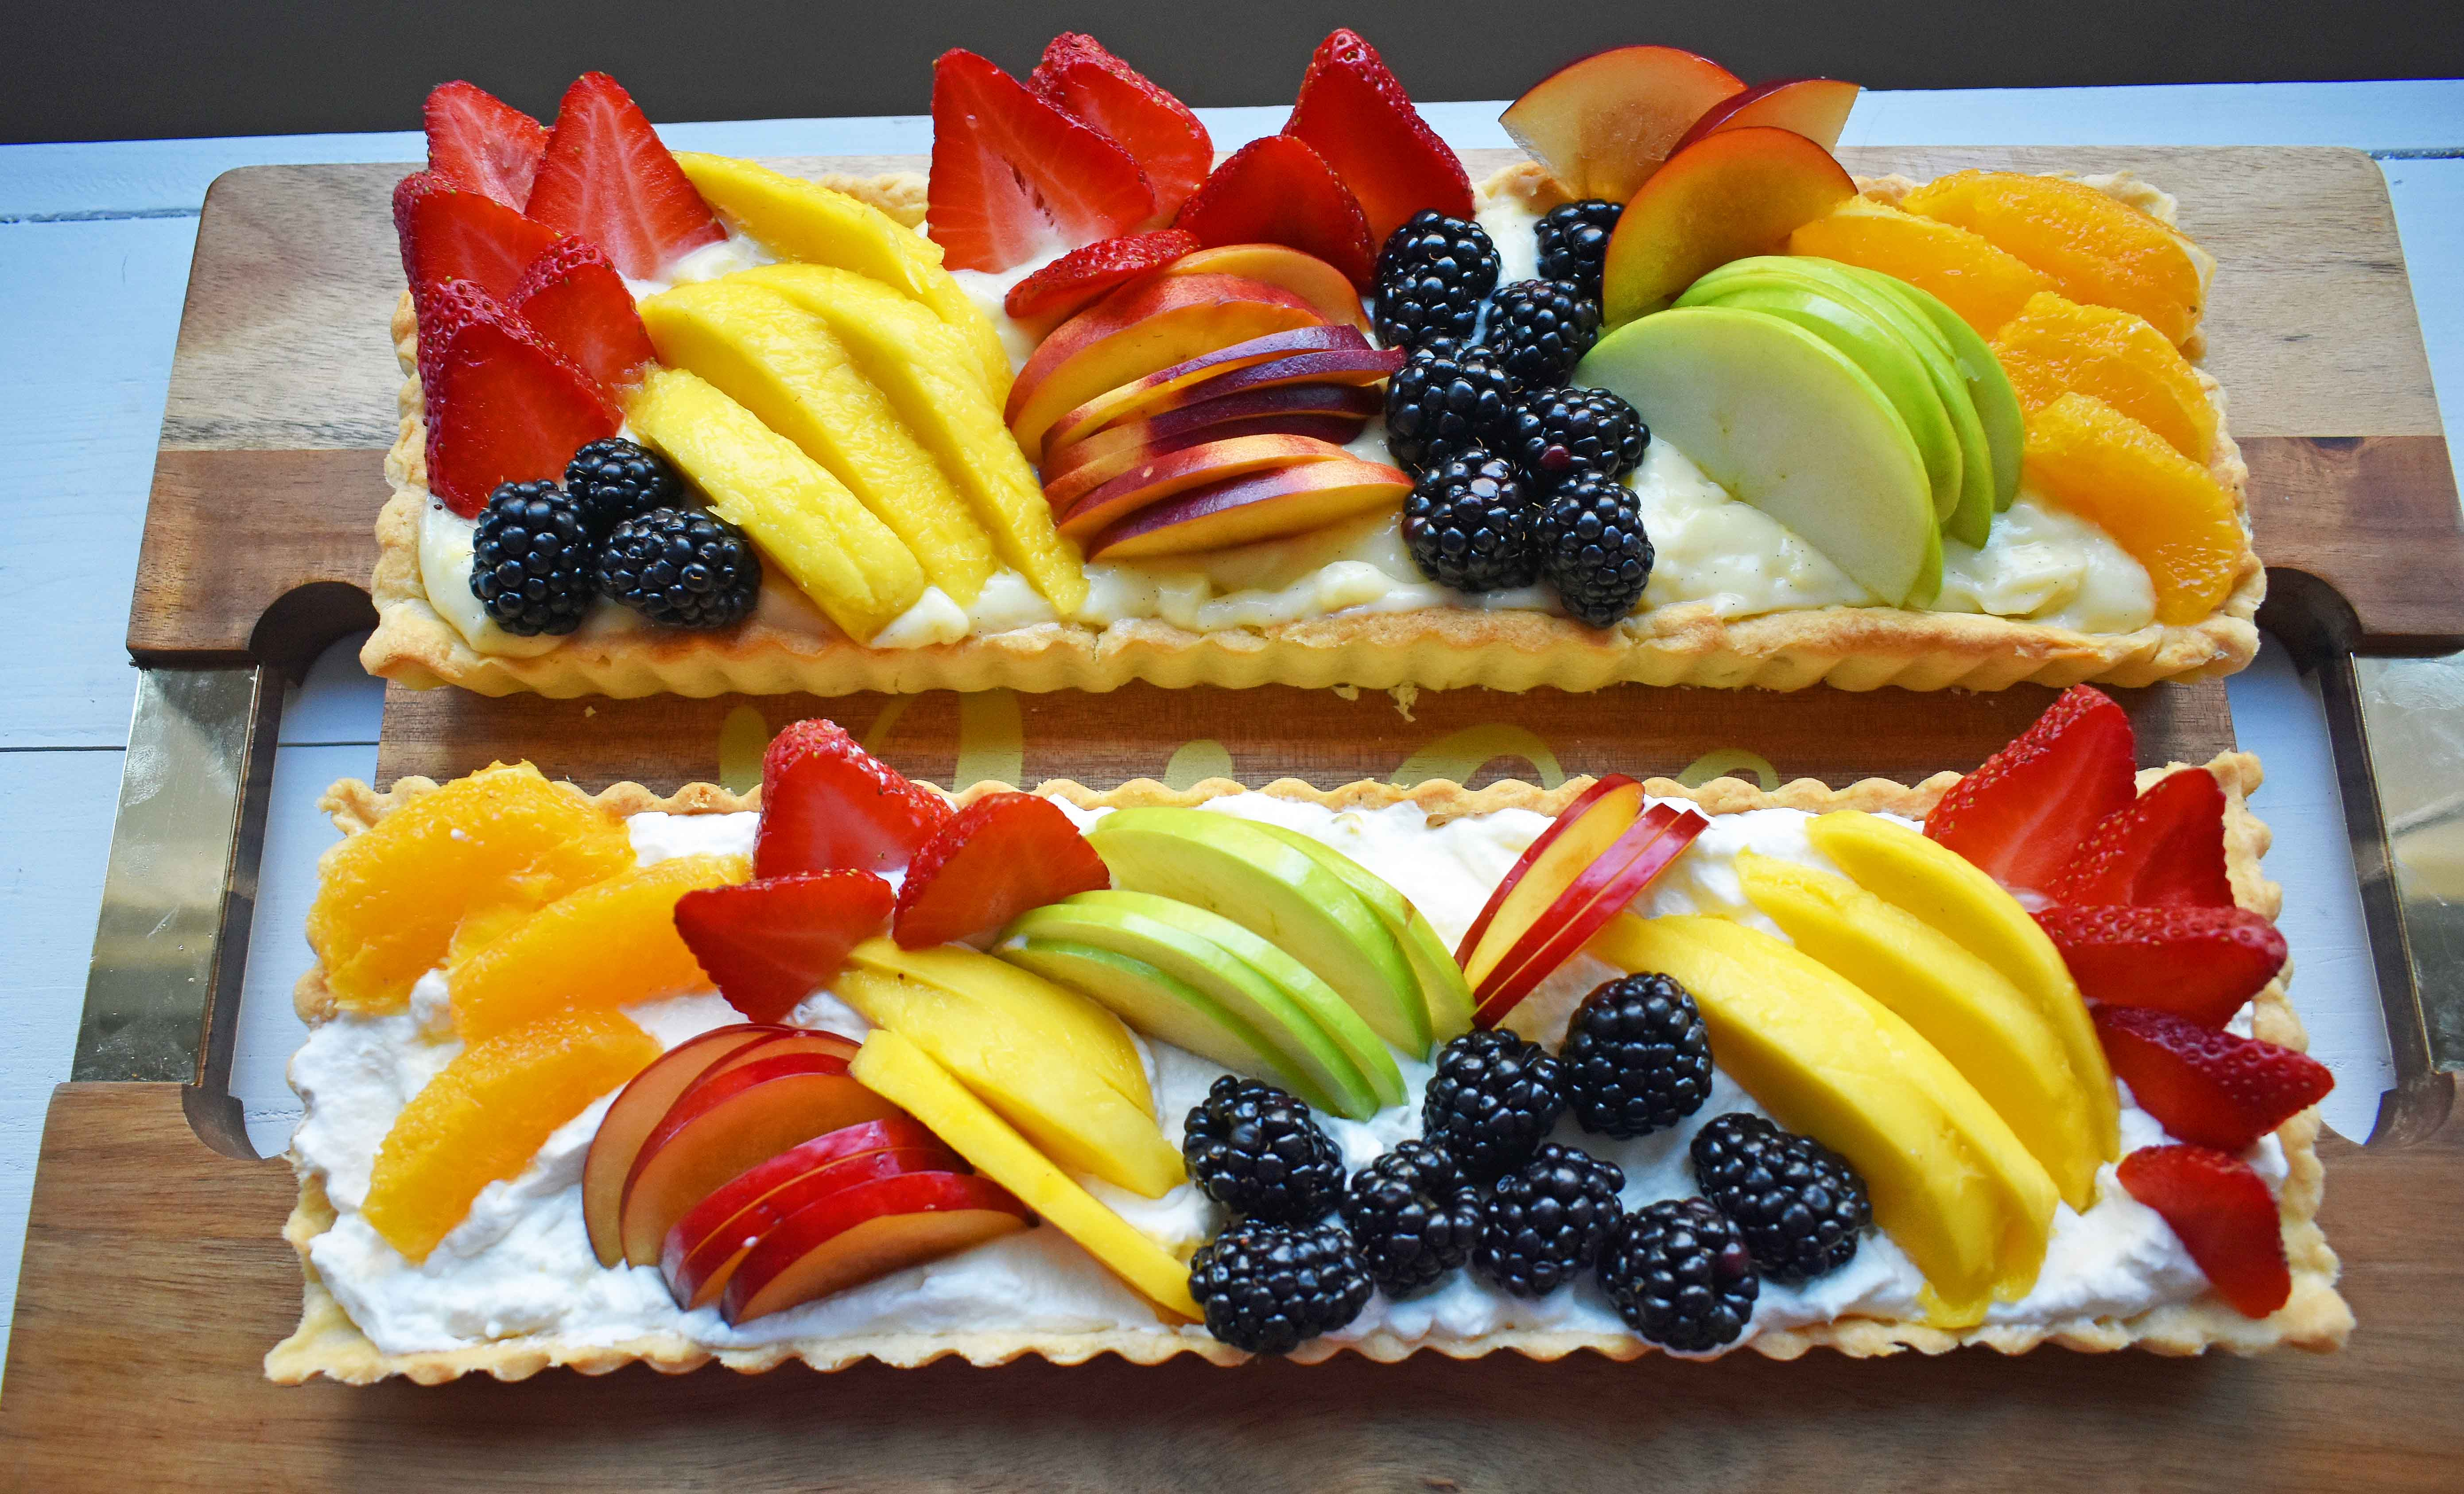 Lemon Cream Filled Fruit Tart. Buttery, flaky pie crust baked in tart pan and filled with homemade lemon cream and topped with sliced fresh fruit. A beautiful Spring and Summer dessert that everyone loves. www.modernhoney.com